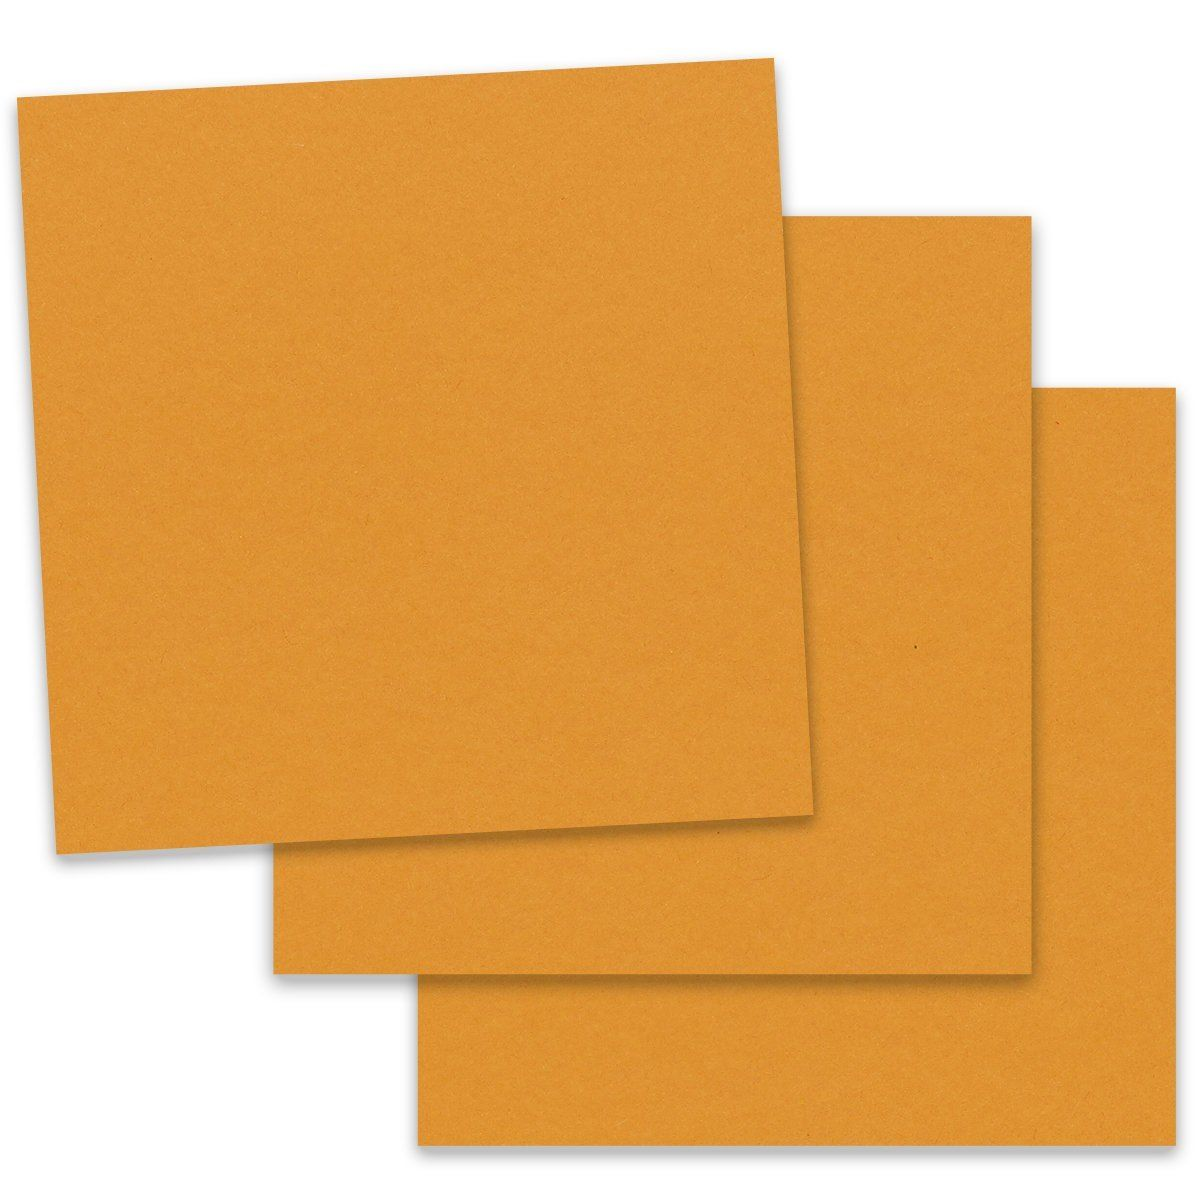 Extract Mustard 12 X 12 Cardstock Paper 380 Gsm 140lb Cover 50 Pk In 2020 Cardstock Paper Paper Card Stock